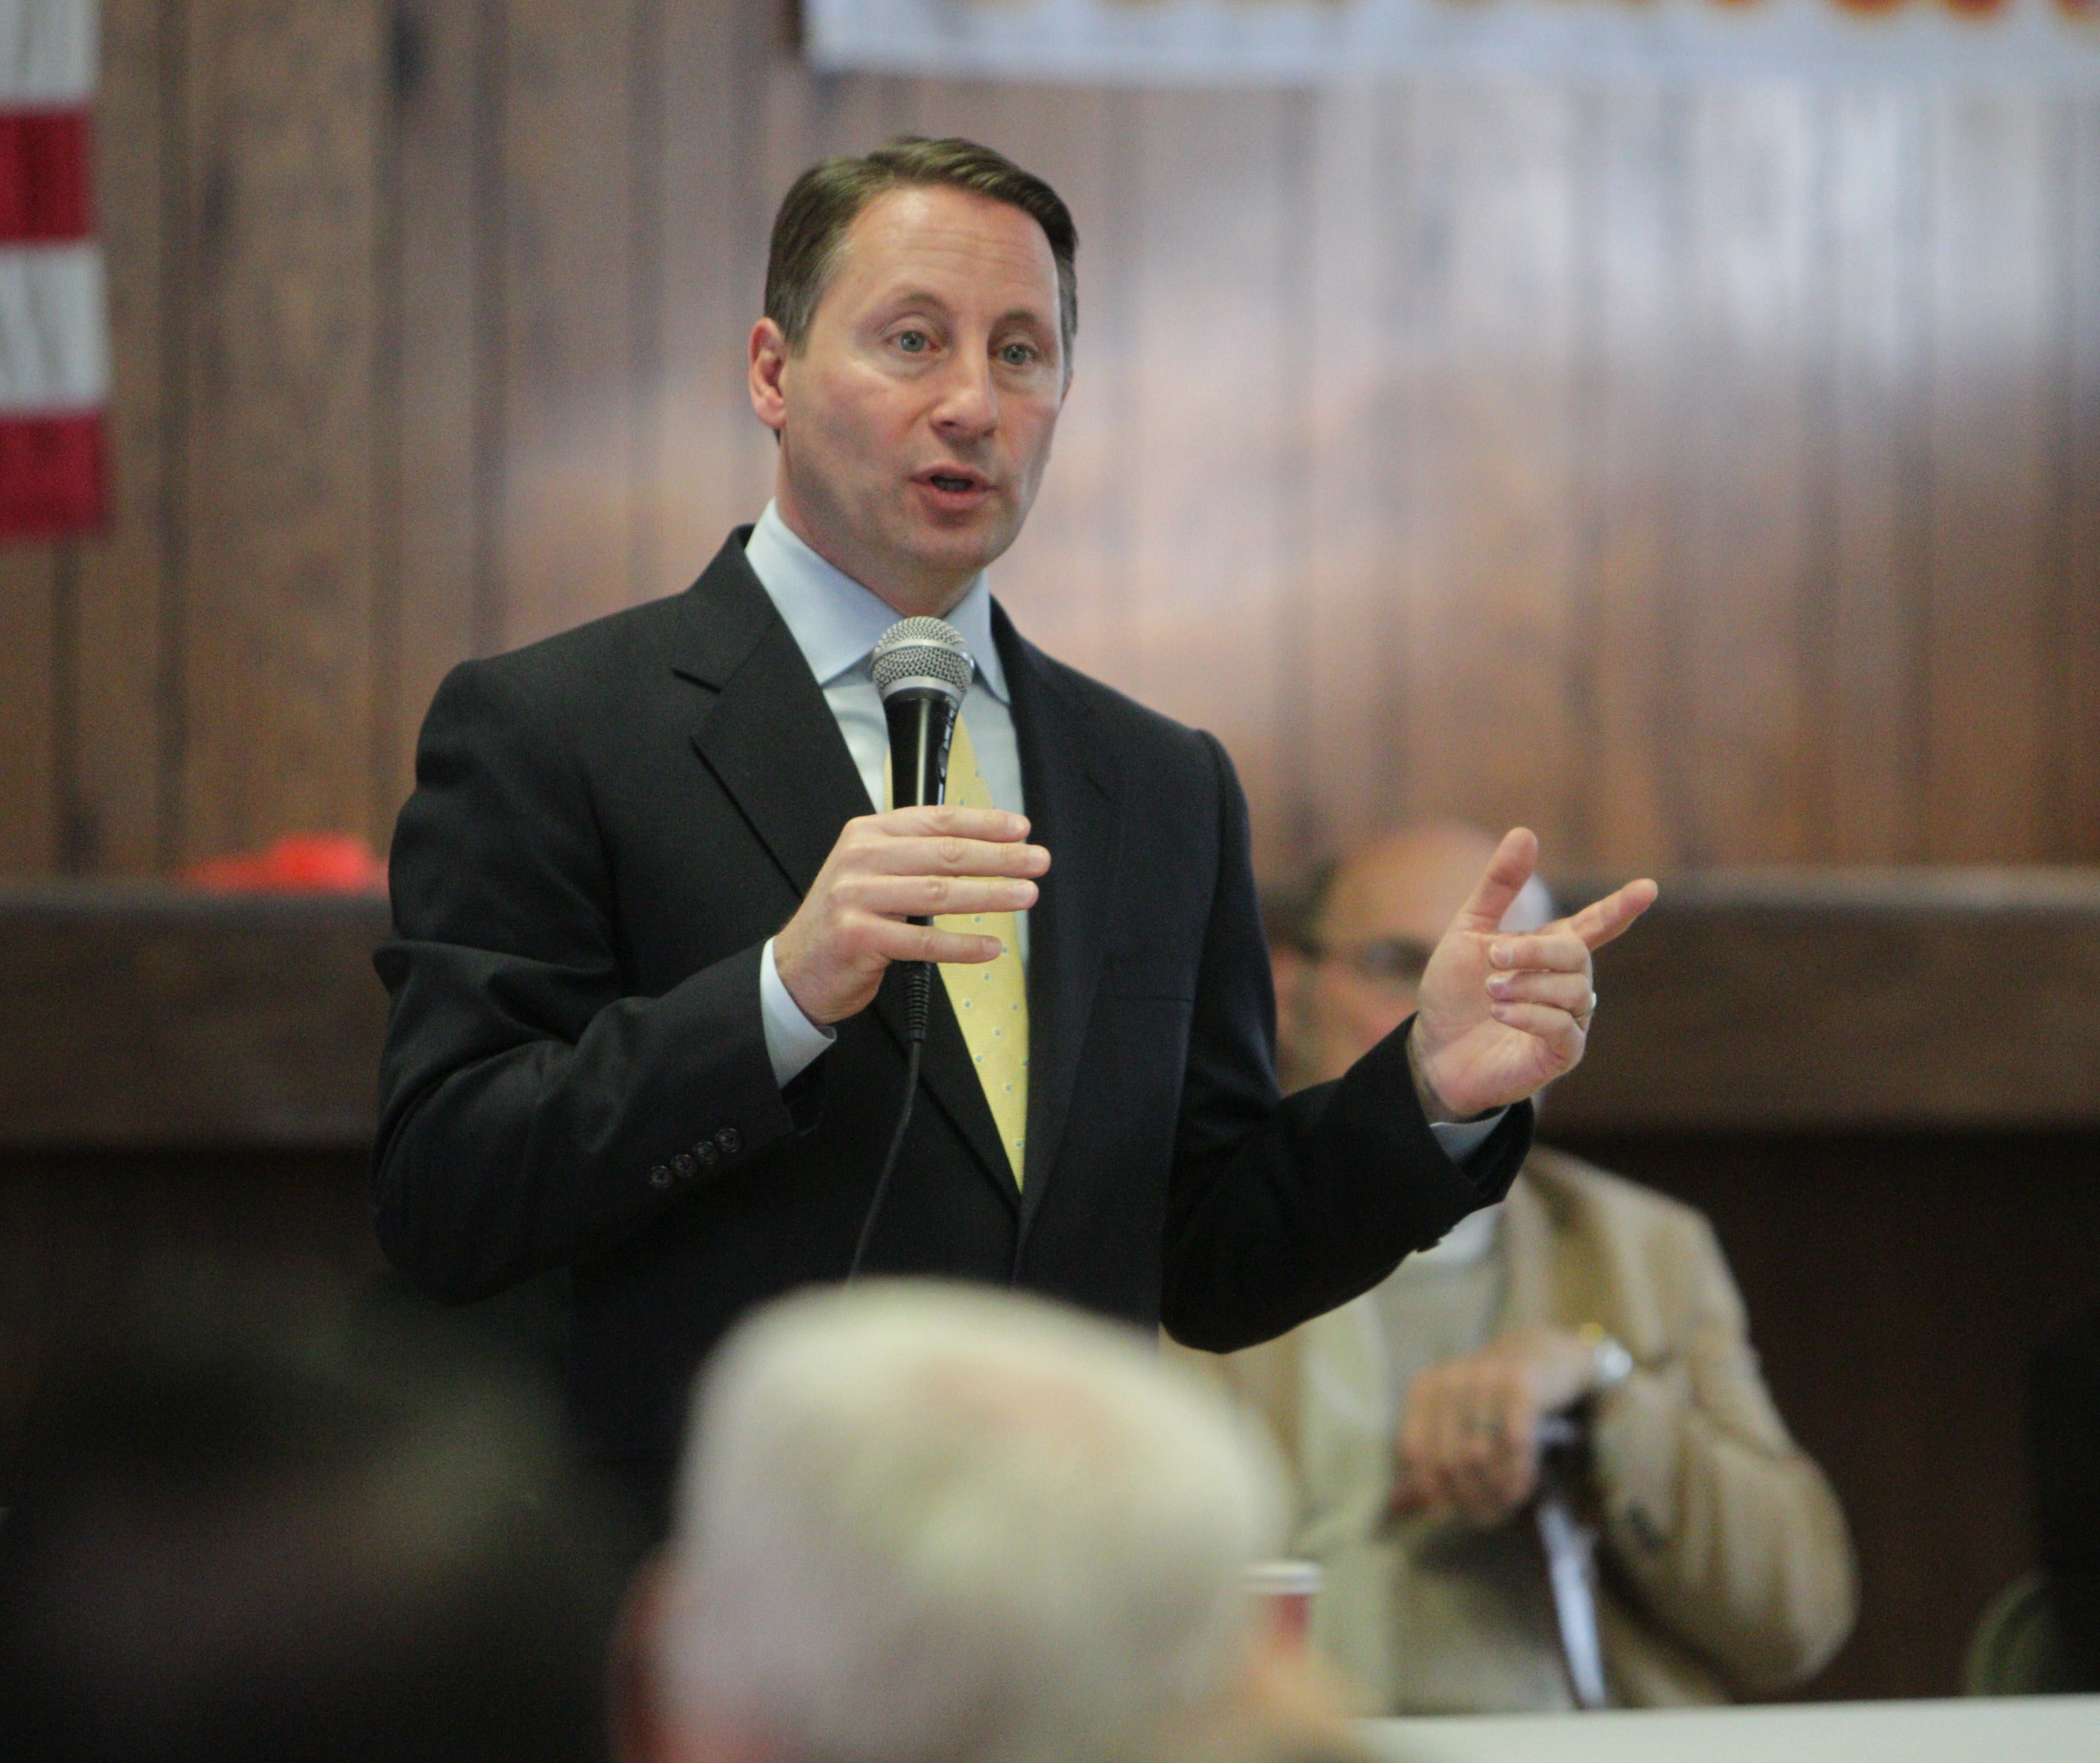 Republican gubernatorial candidate Rob Astorino attended the Erie County GOP Chairman's Roundtable at the VFW Post 416 in Williamsville on April 12, where he answered questions from the audience.